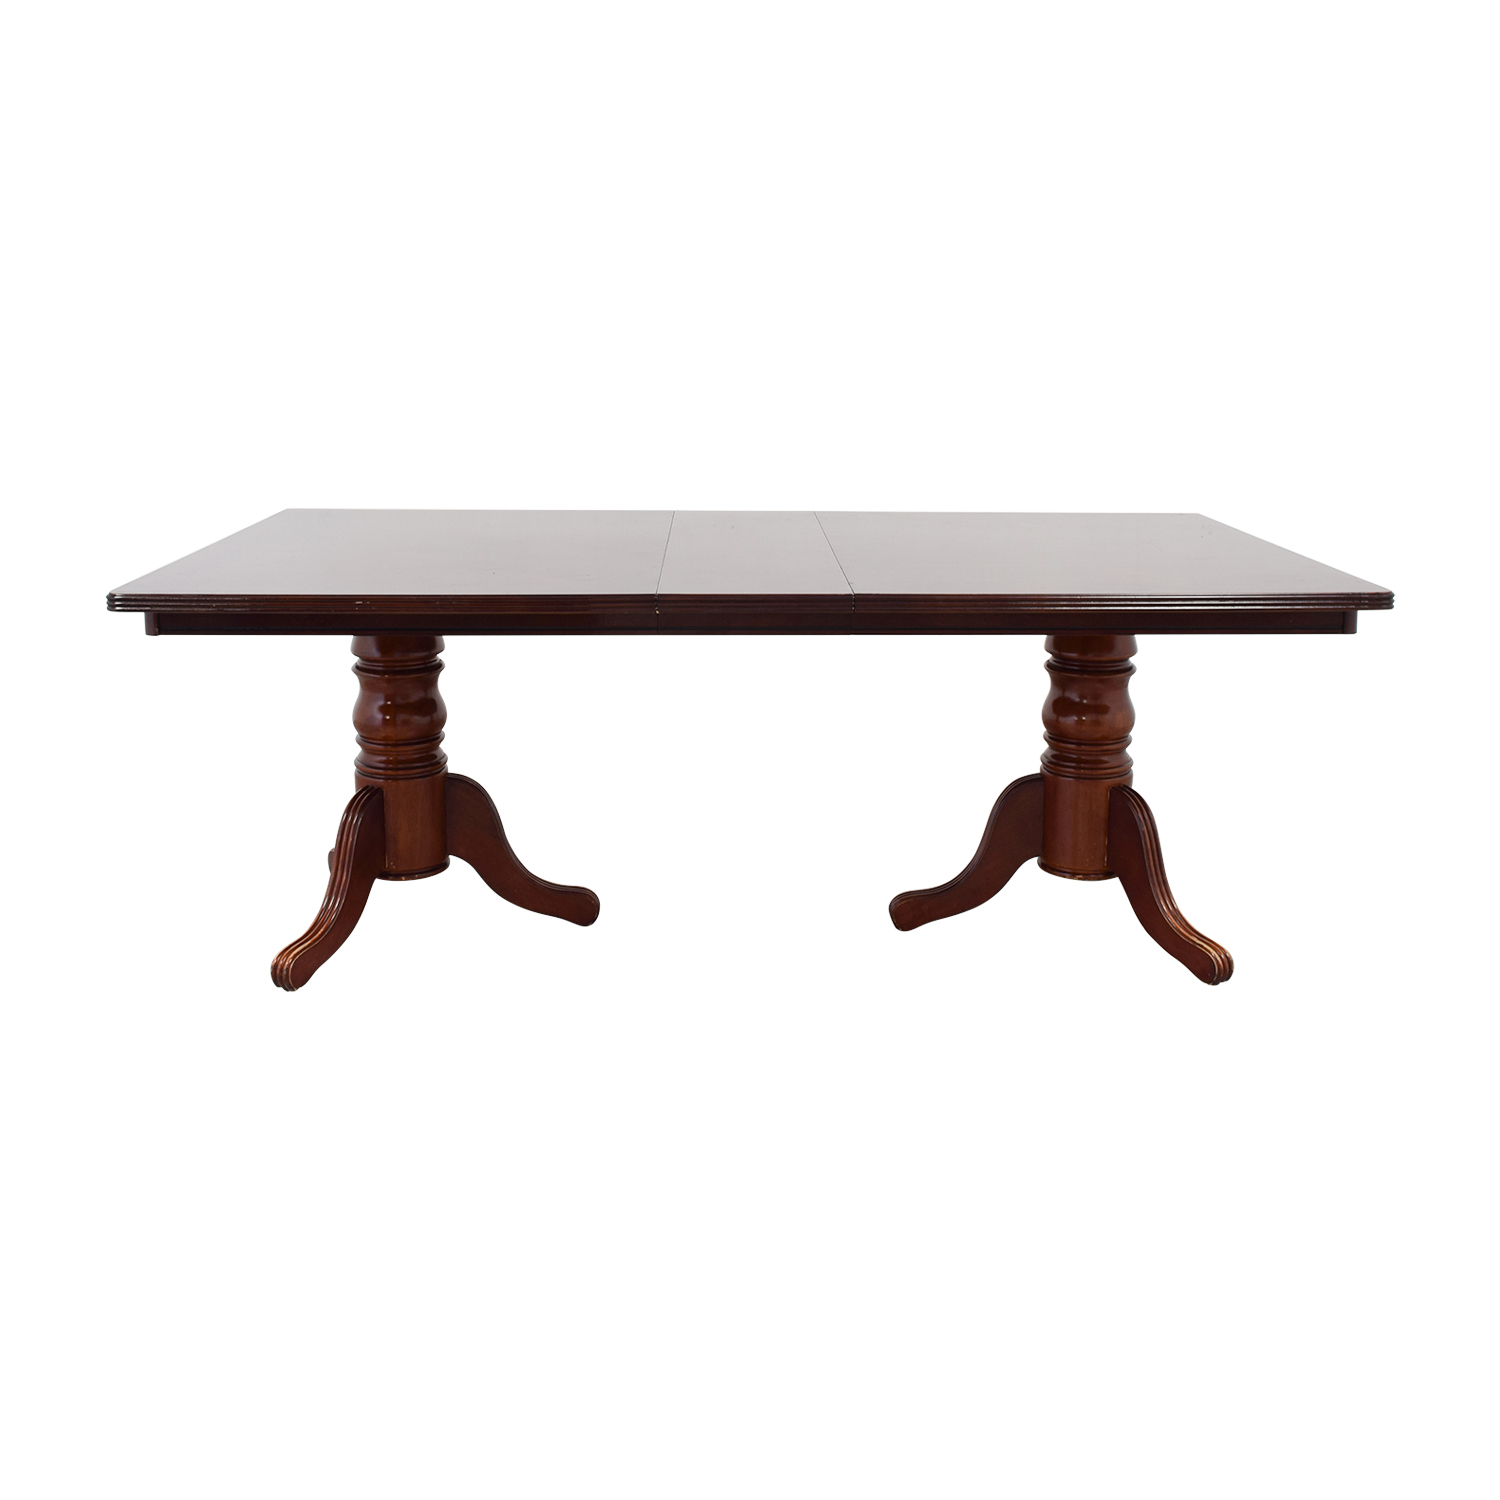 Antique Rectangle Dining Table with Two Leaves for sale